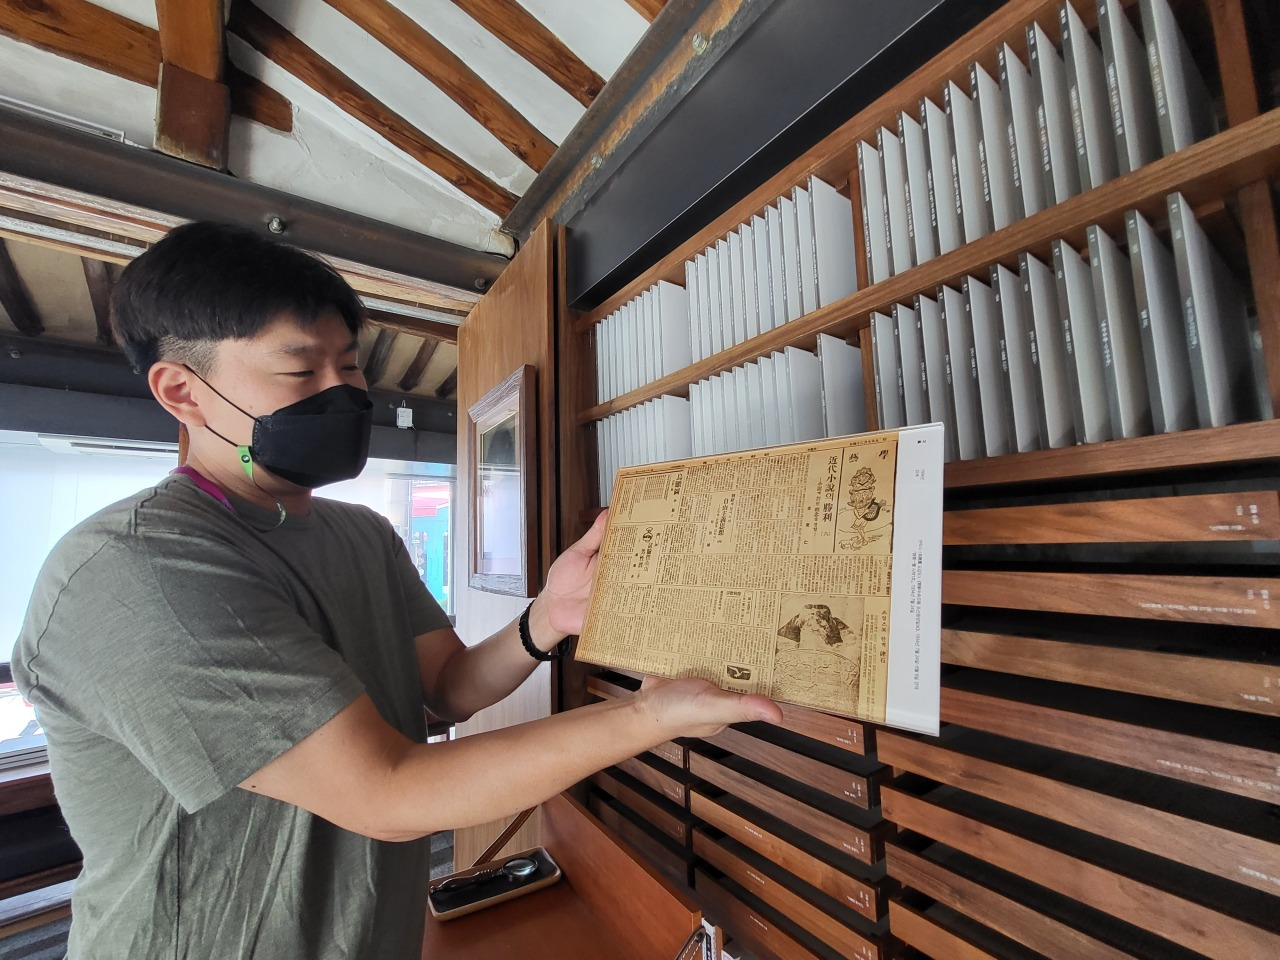 Lee Sang-hyun, who is in charge of publicity for the National Trust for Cultural Heritage, holds up a copy of one of Lee Sang's works from 1934. (Kim Hae-yeon/The Korea Herald)